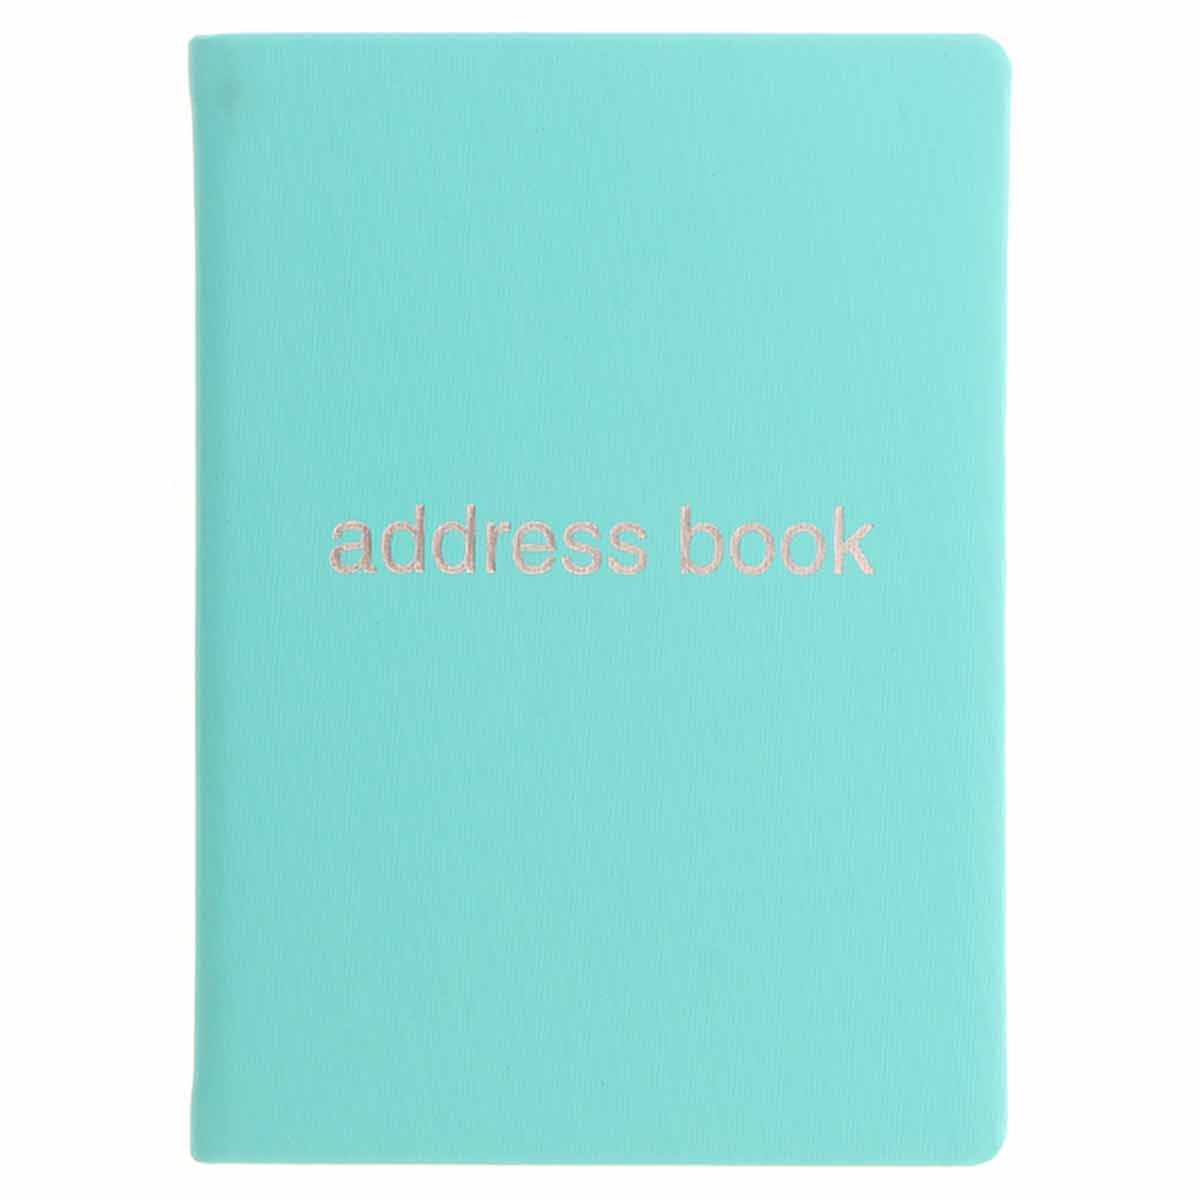 Letts Dazzle A6 Address Book Turquoise